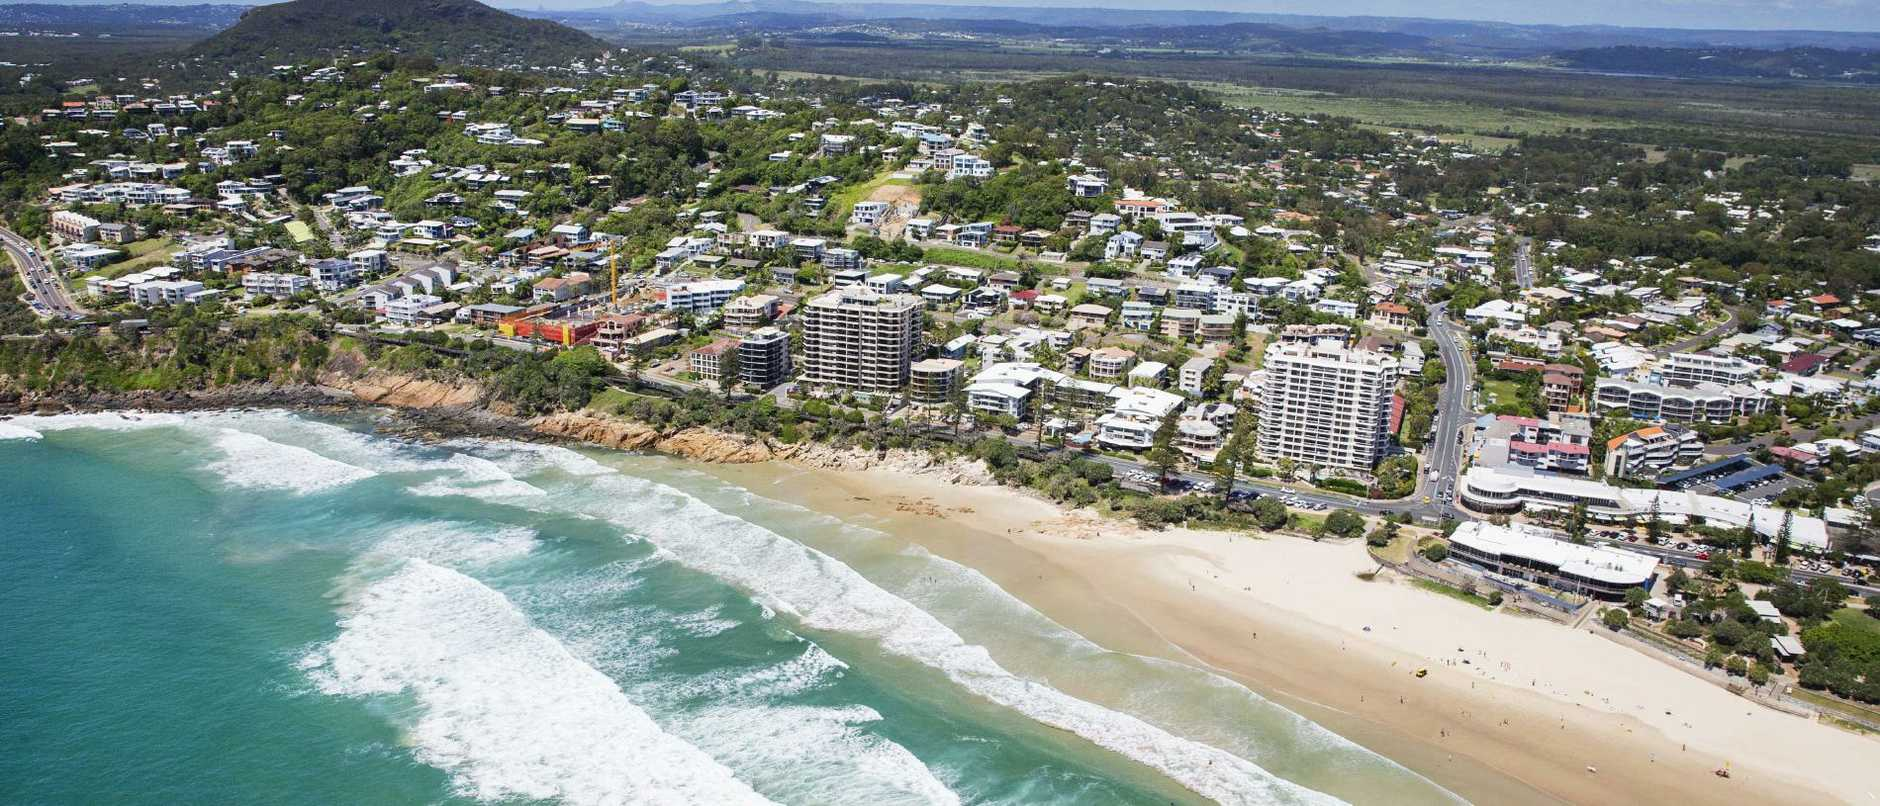 Aerial view over Coolum Beach. Photo Lachie Millard